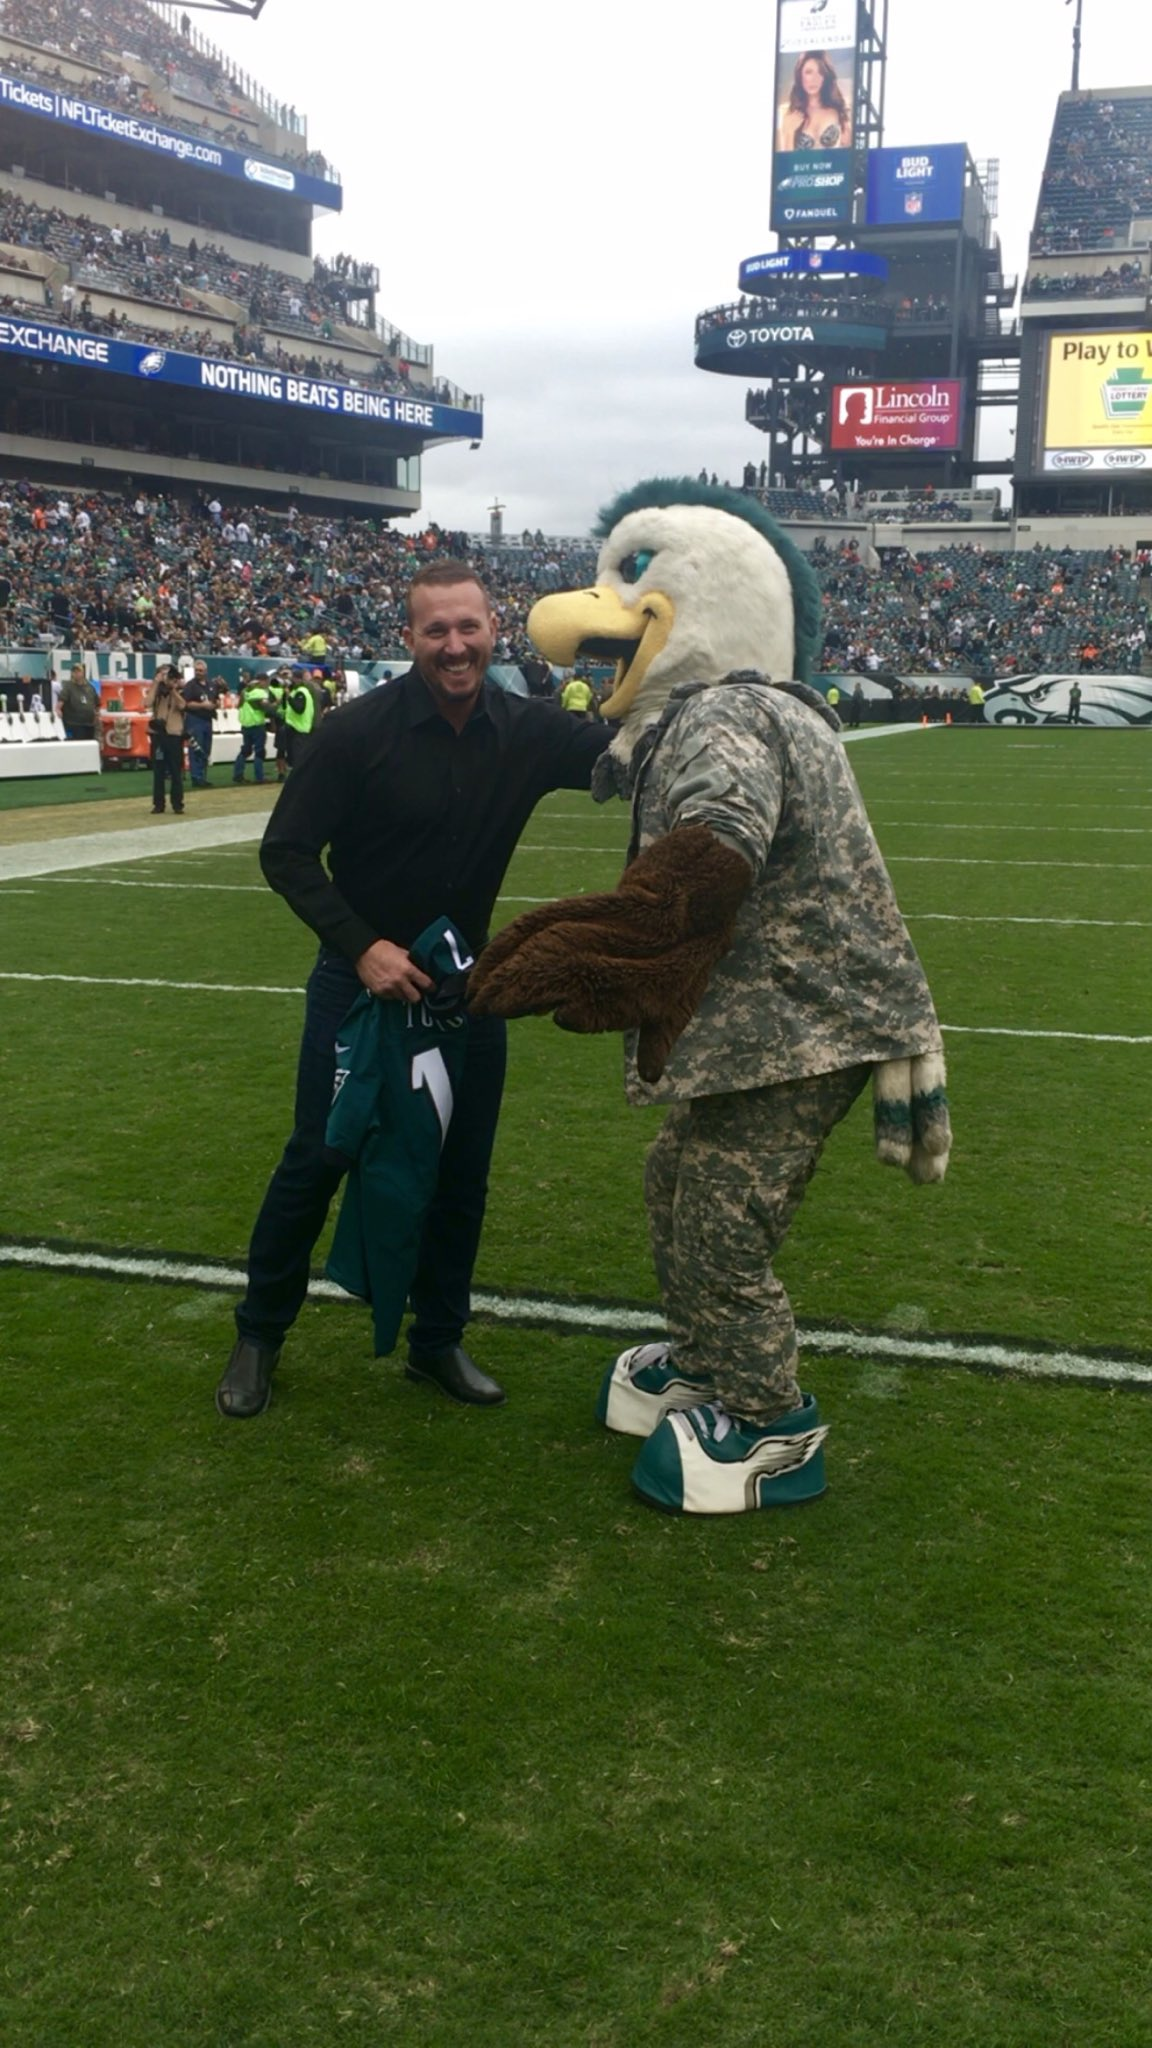 Look who's Honorary Captain for the #EaglesSalute game! Thanks to @Dakota_Meyer for supporting our #vets! https://t.co/xlizzaQz7s